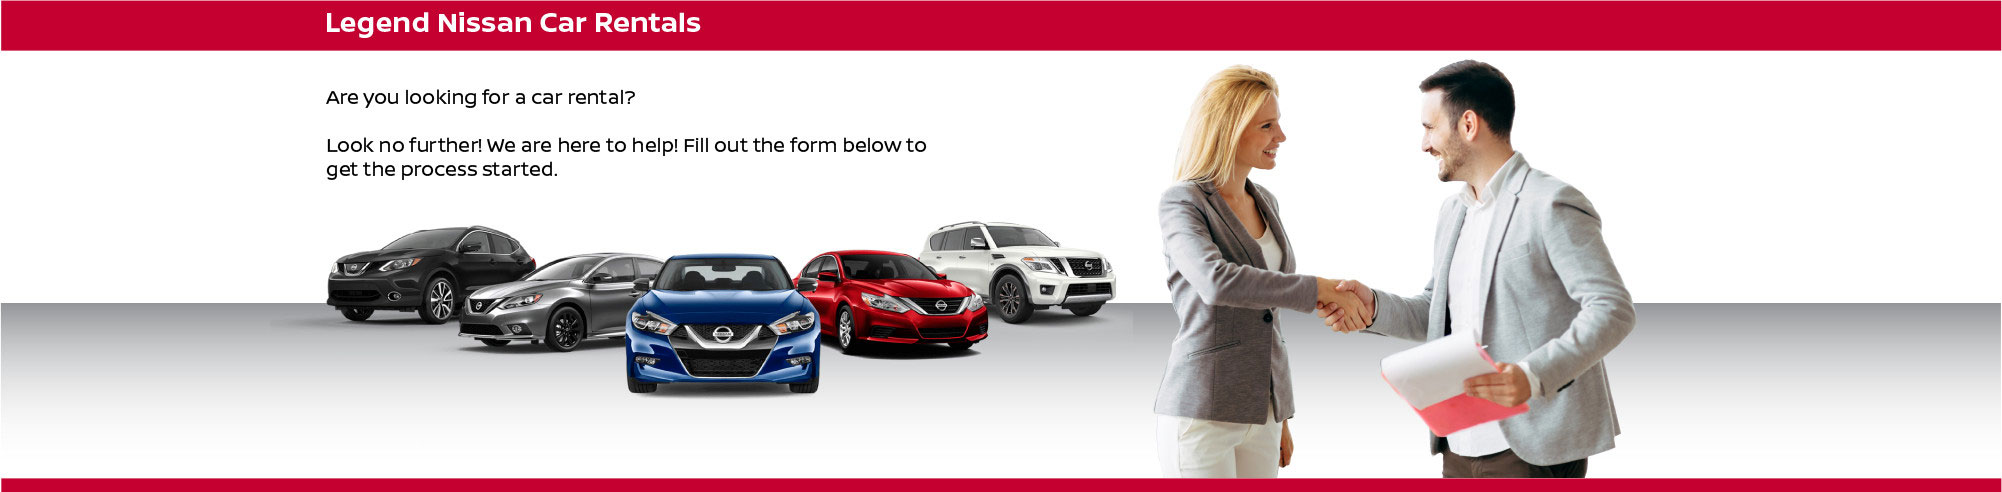 Legend Nissan Car Rental Banner